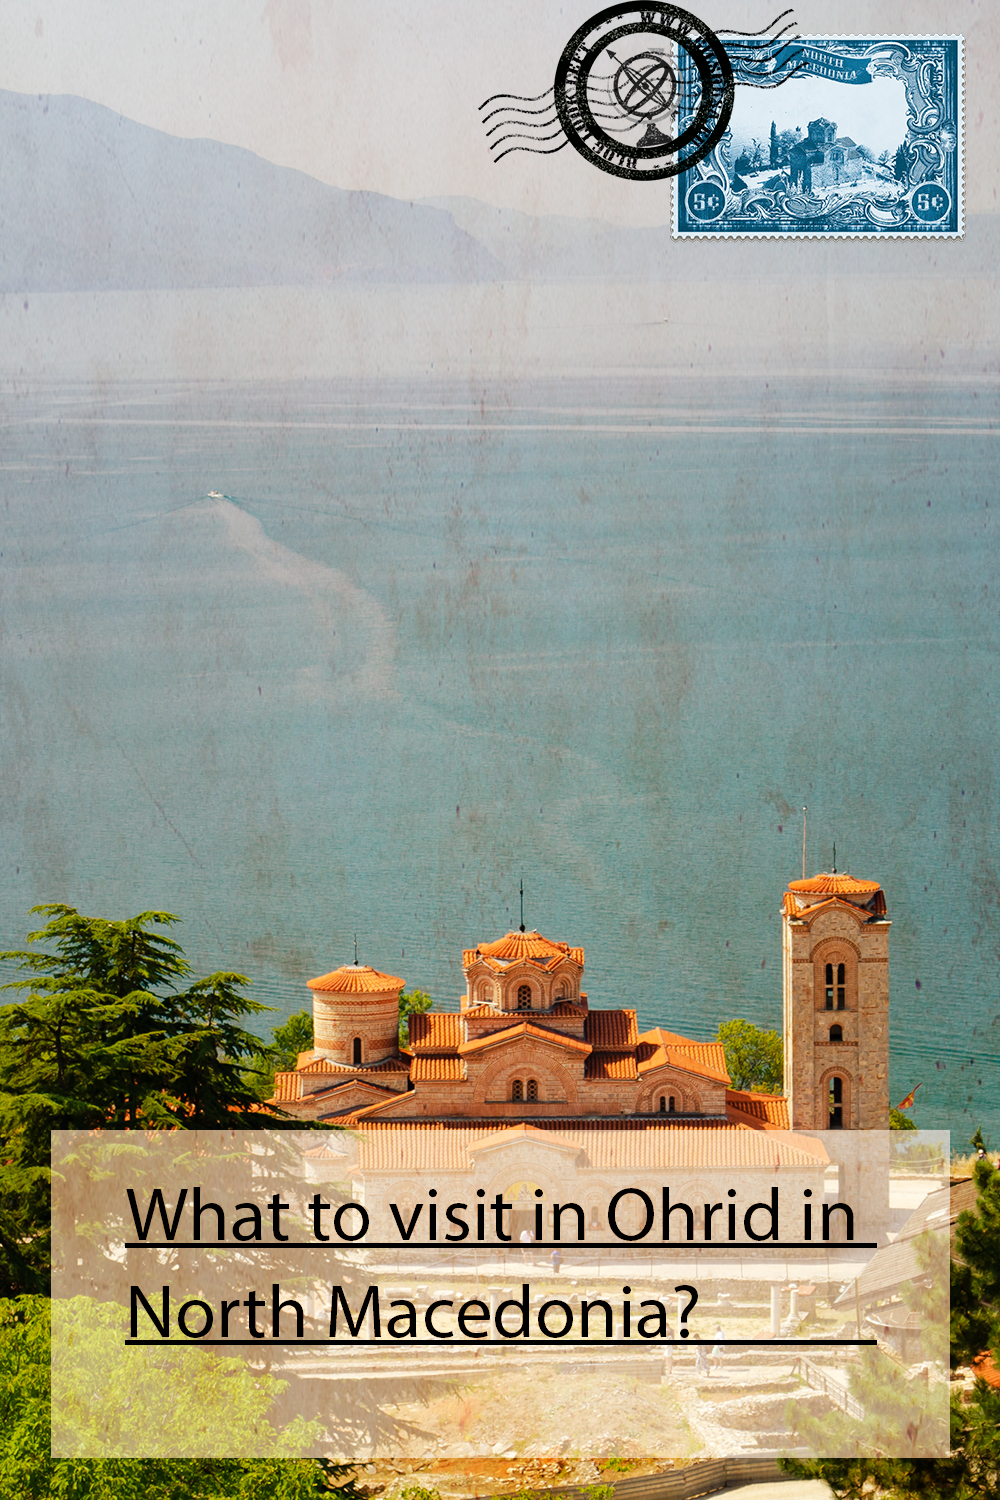 What to visit in Ohrid in North Macedonia?